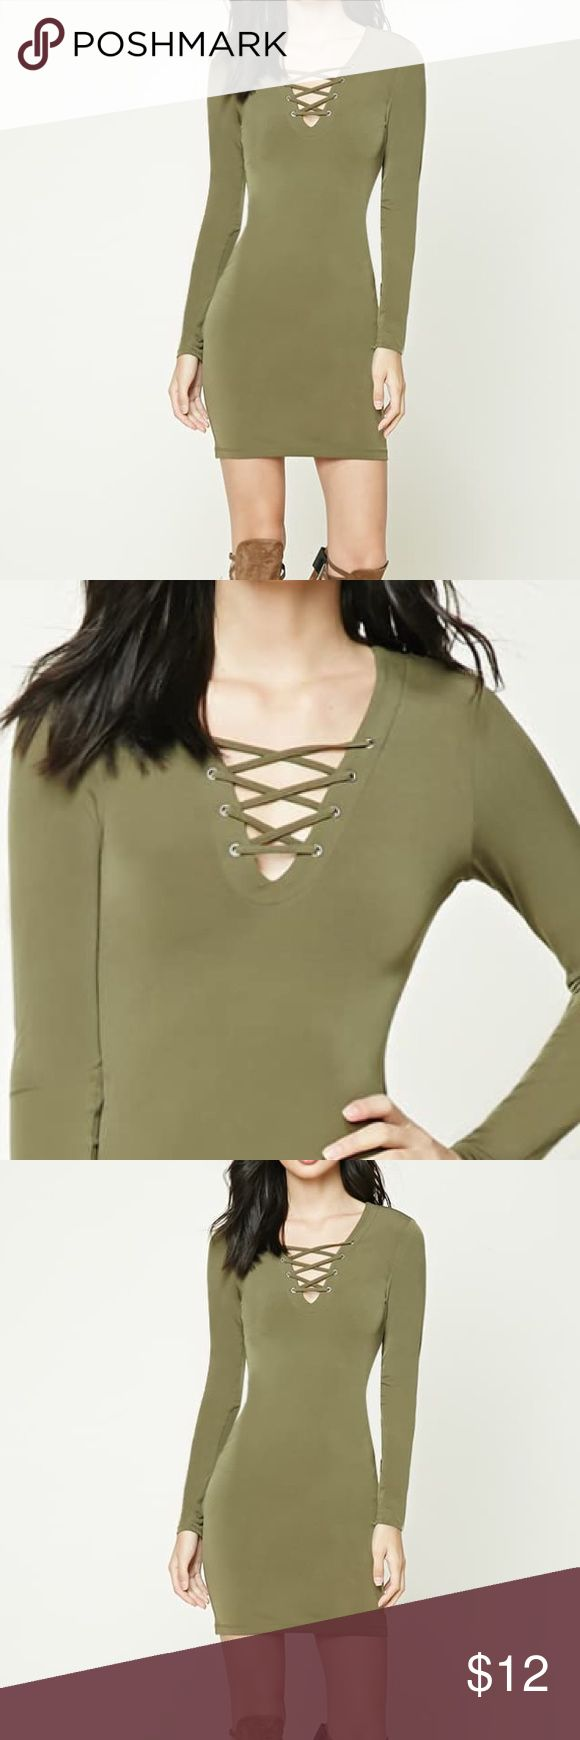 Green bodycon dress Olive green bodycon dress super cute. Fits well, good for a casual look. Long sleeve. No flaws. Buy now! Size medium Forever 21 Dresses Mini